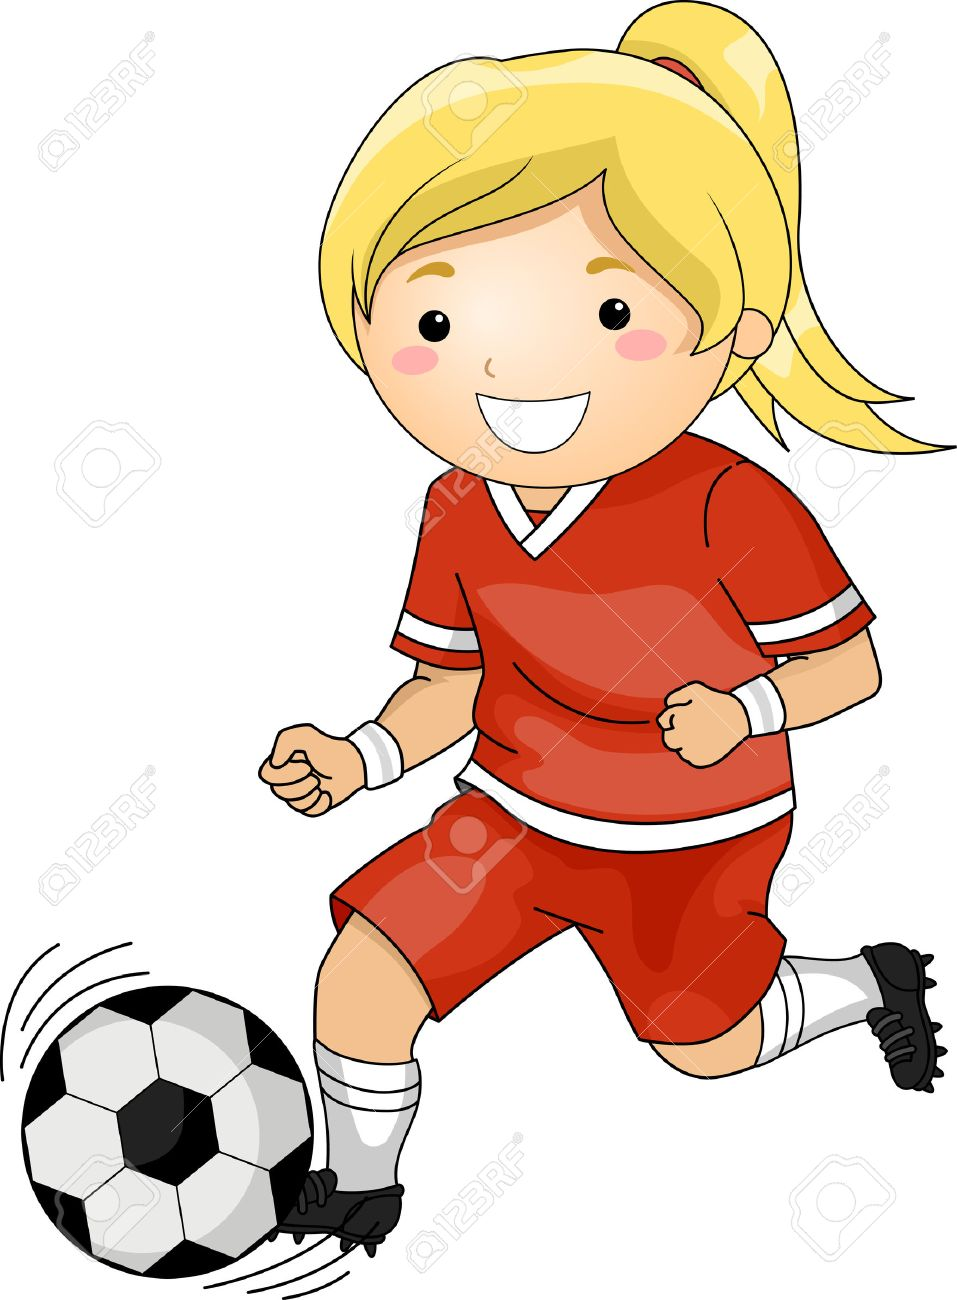 Illustration of a Girl Playing Soccer.